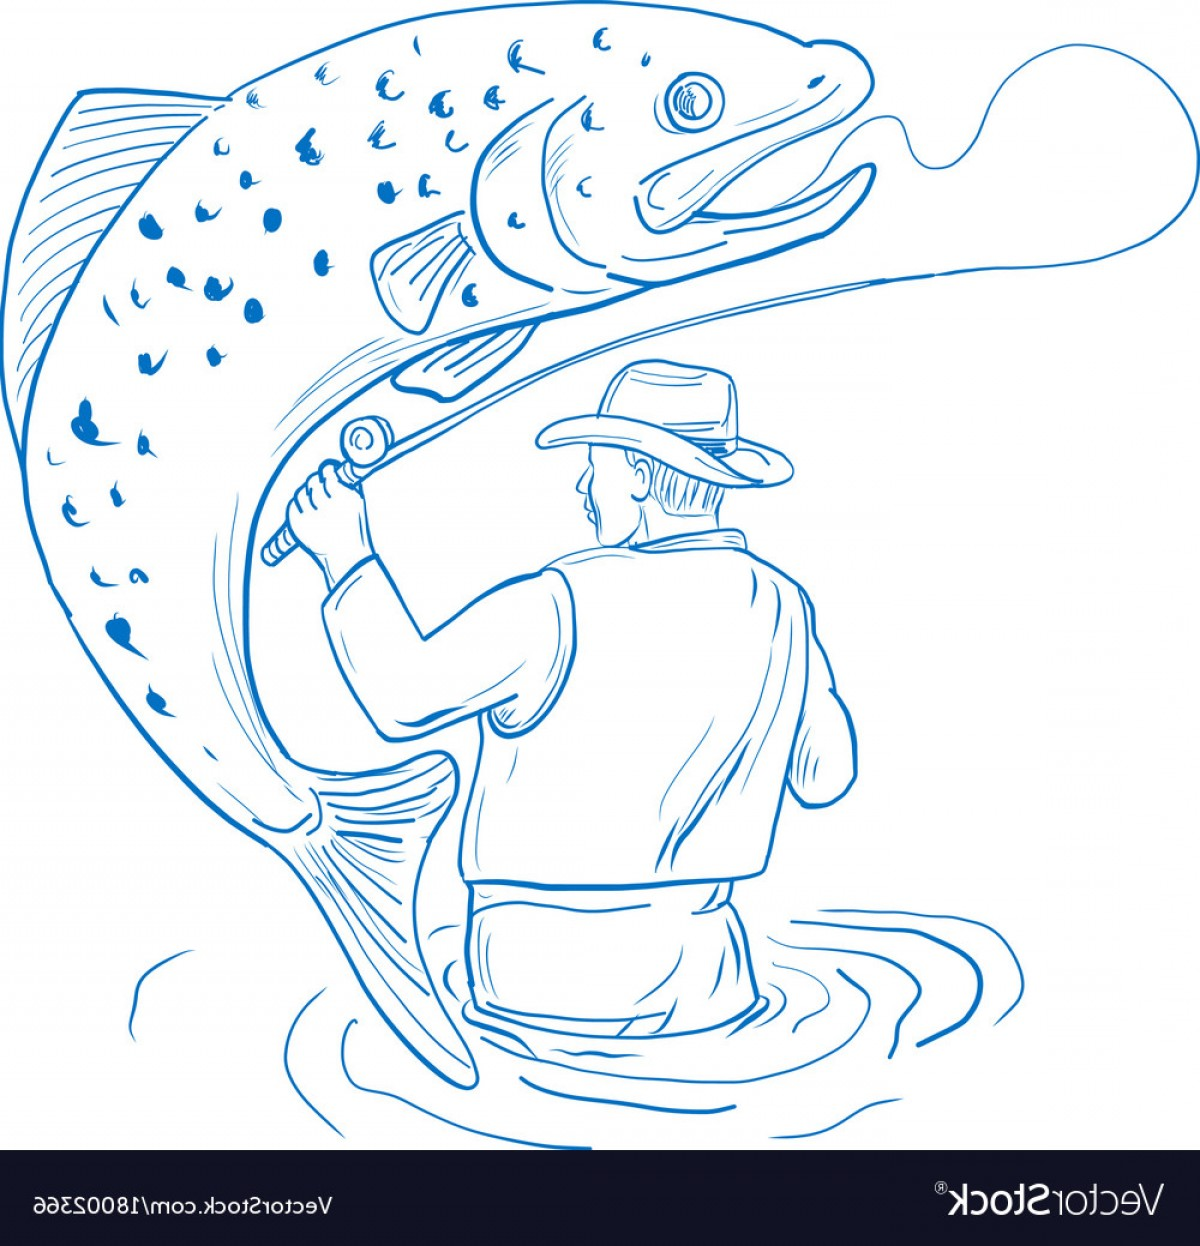 Detailed Vector Art Fly Fisherman: Fly Fisherman Trout Fishing Drawing Vector